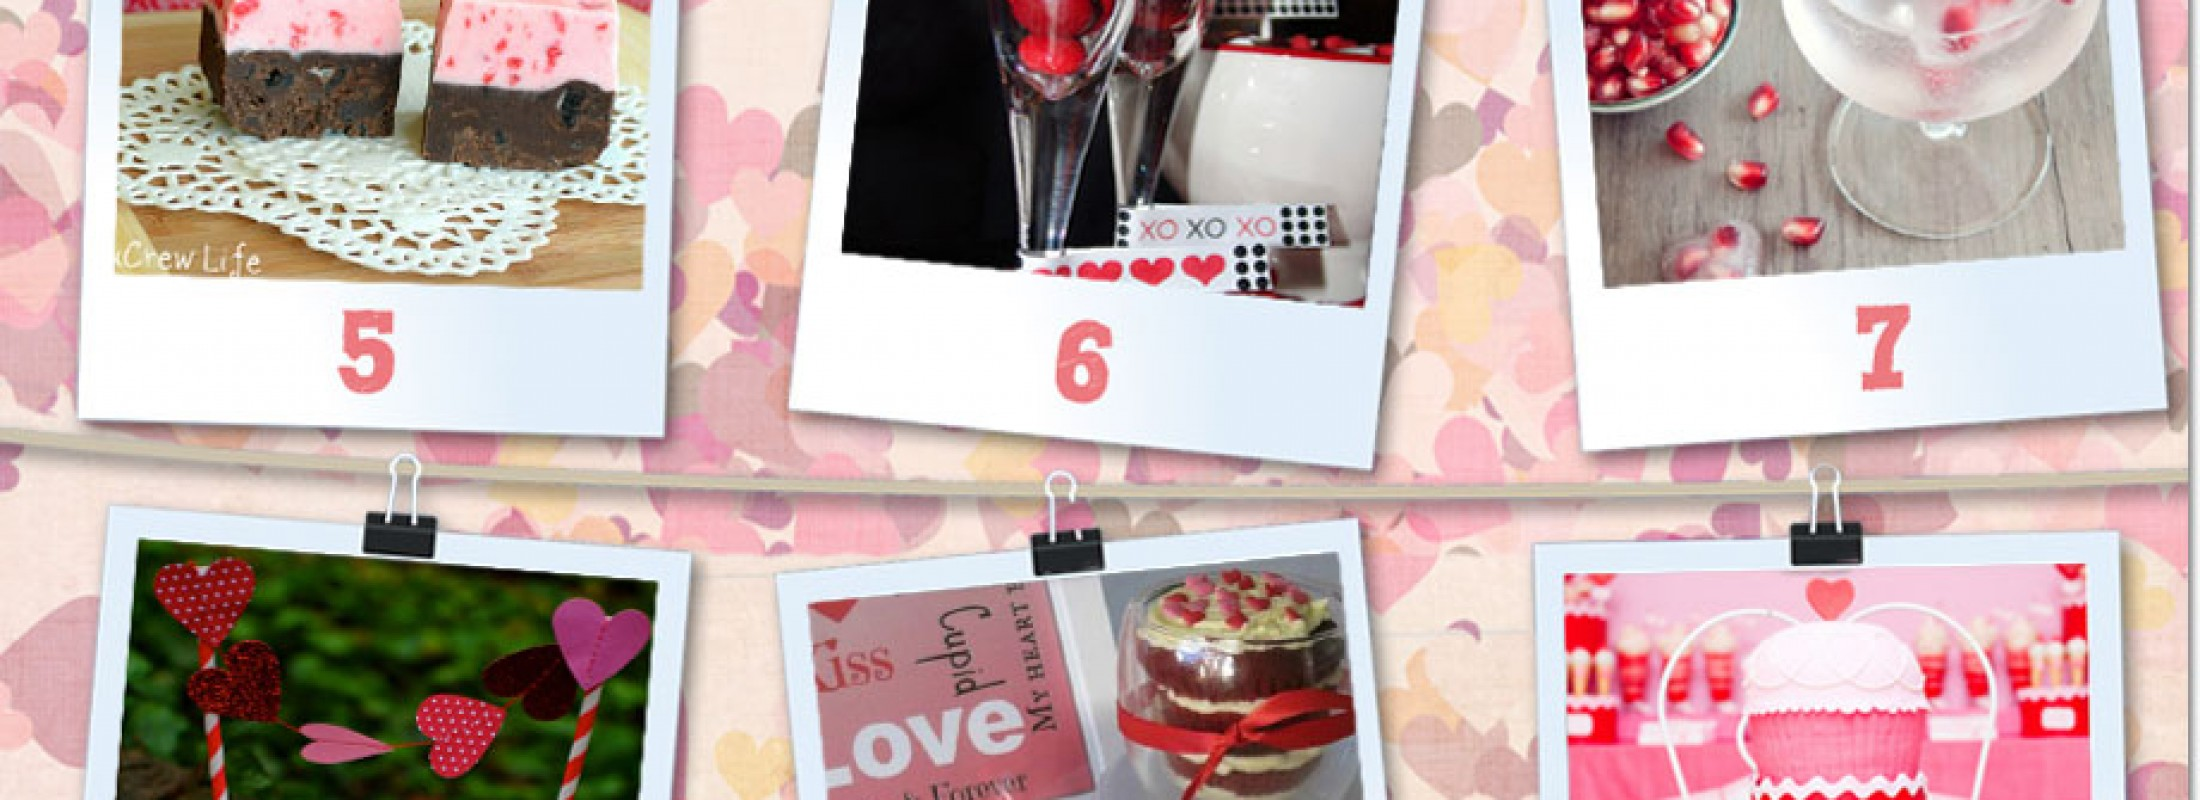 Creative Valentine's Sweets and Favors.